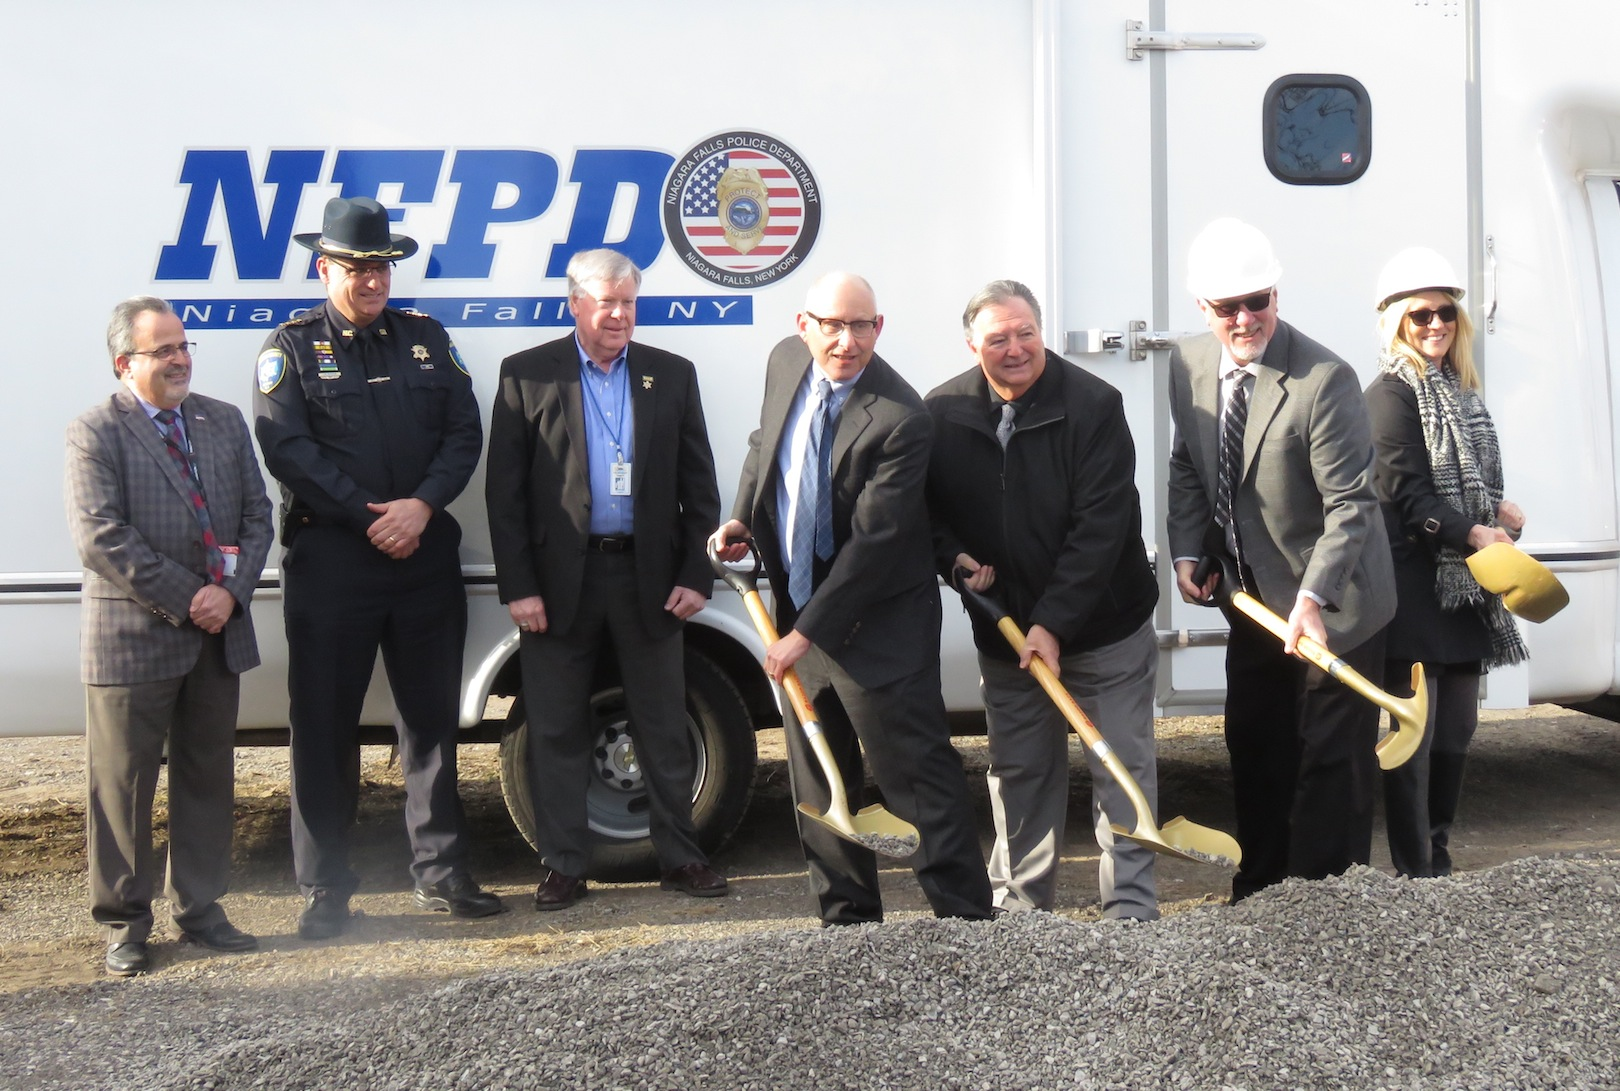 From left, Niagara County Department of Economic Development Commissioner Michael Casale, Niagara County Sheriff James Voutour and Niagara County Legislator David Godfrey watch as New York State Homes and Community Renewal Assistant Commissioner Leonard Skrill, Town of Niagara Supervisor Lee Wallace, Empire Emergency Apparatus President Michael McLaughlin and Kathleen McLaughlin break ground on a new 10,000-square-foot expansion. (Photo by David Yarger)